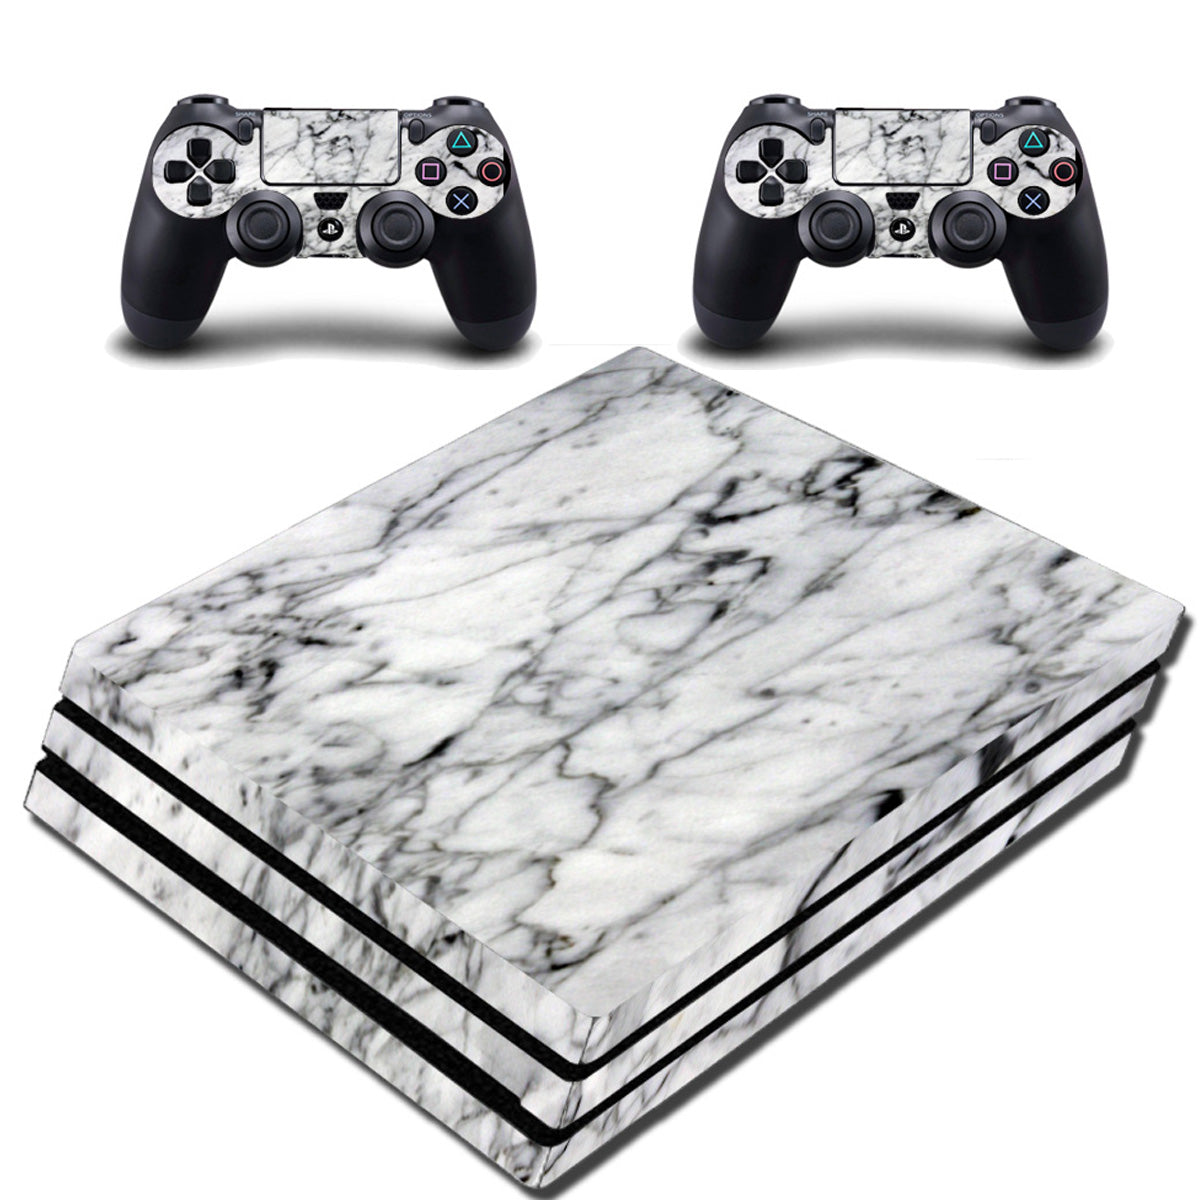 VWAQ PS4 Pro Marble Skin Cover Playstation 4 Pro White Wrap Decal - PPGC7 - VWAQ Vinyl Wall Art Quotes and Prints